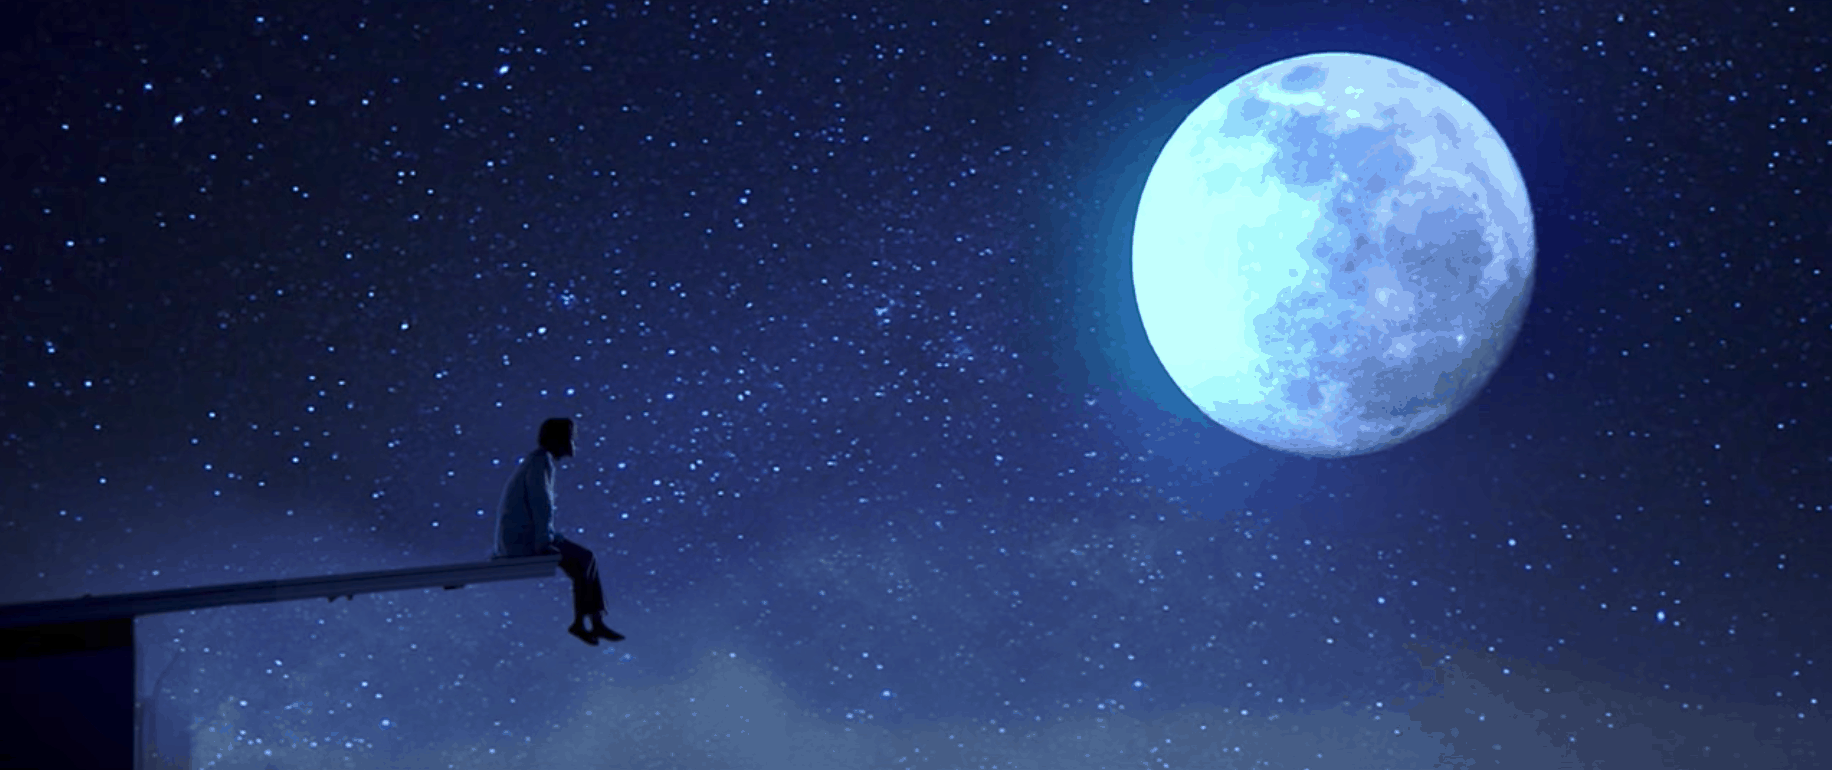 BTS Serendipity music video: Picture of a man sitting on the edge of a rock jutting out into the sky, under a bright full moon